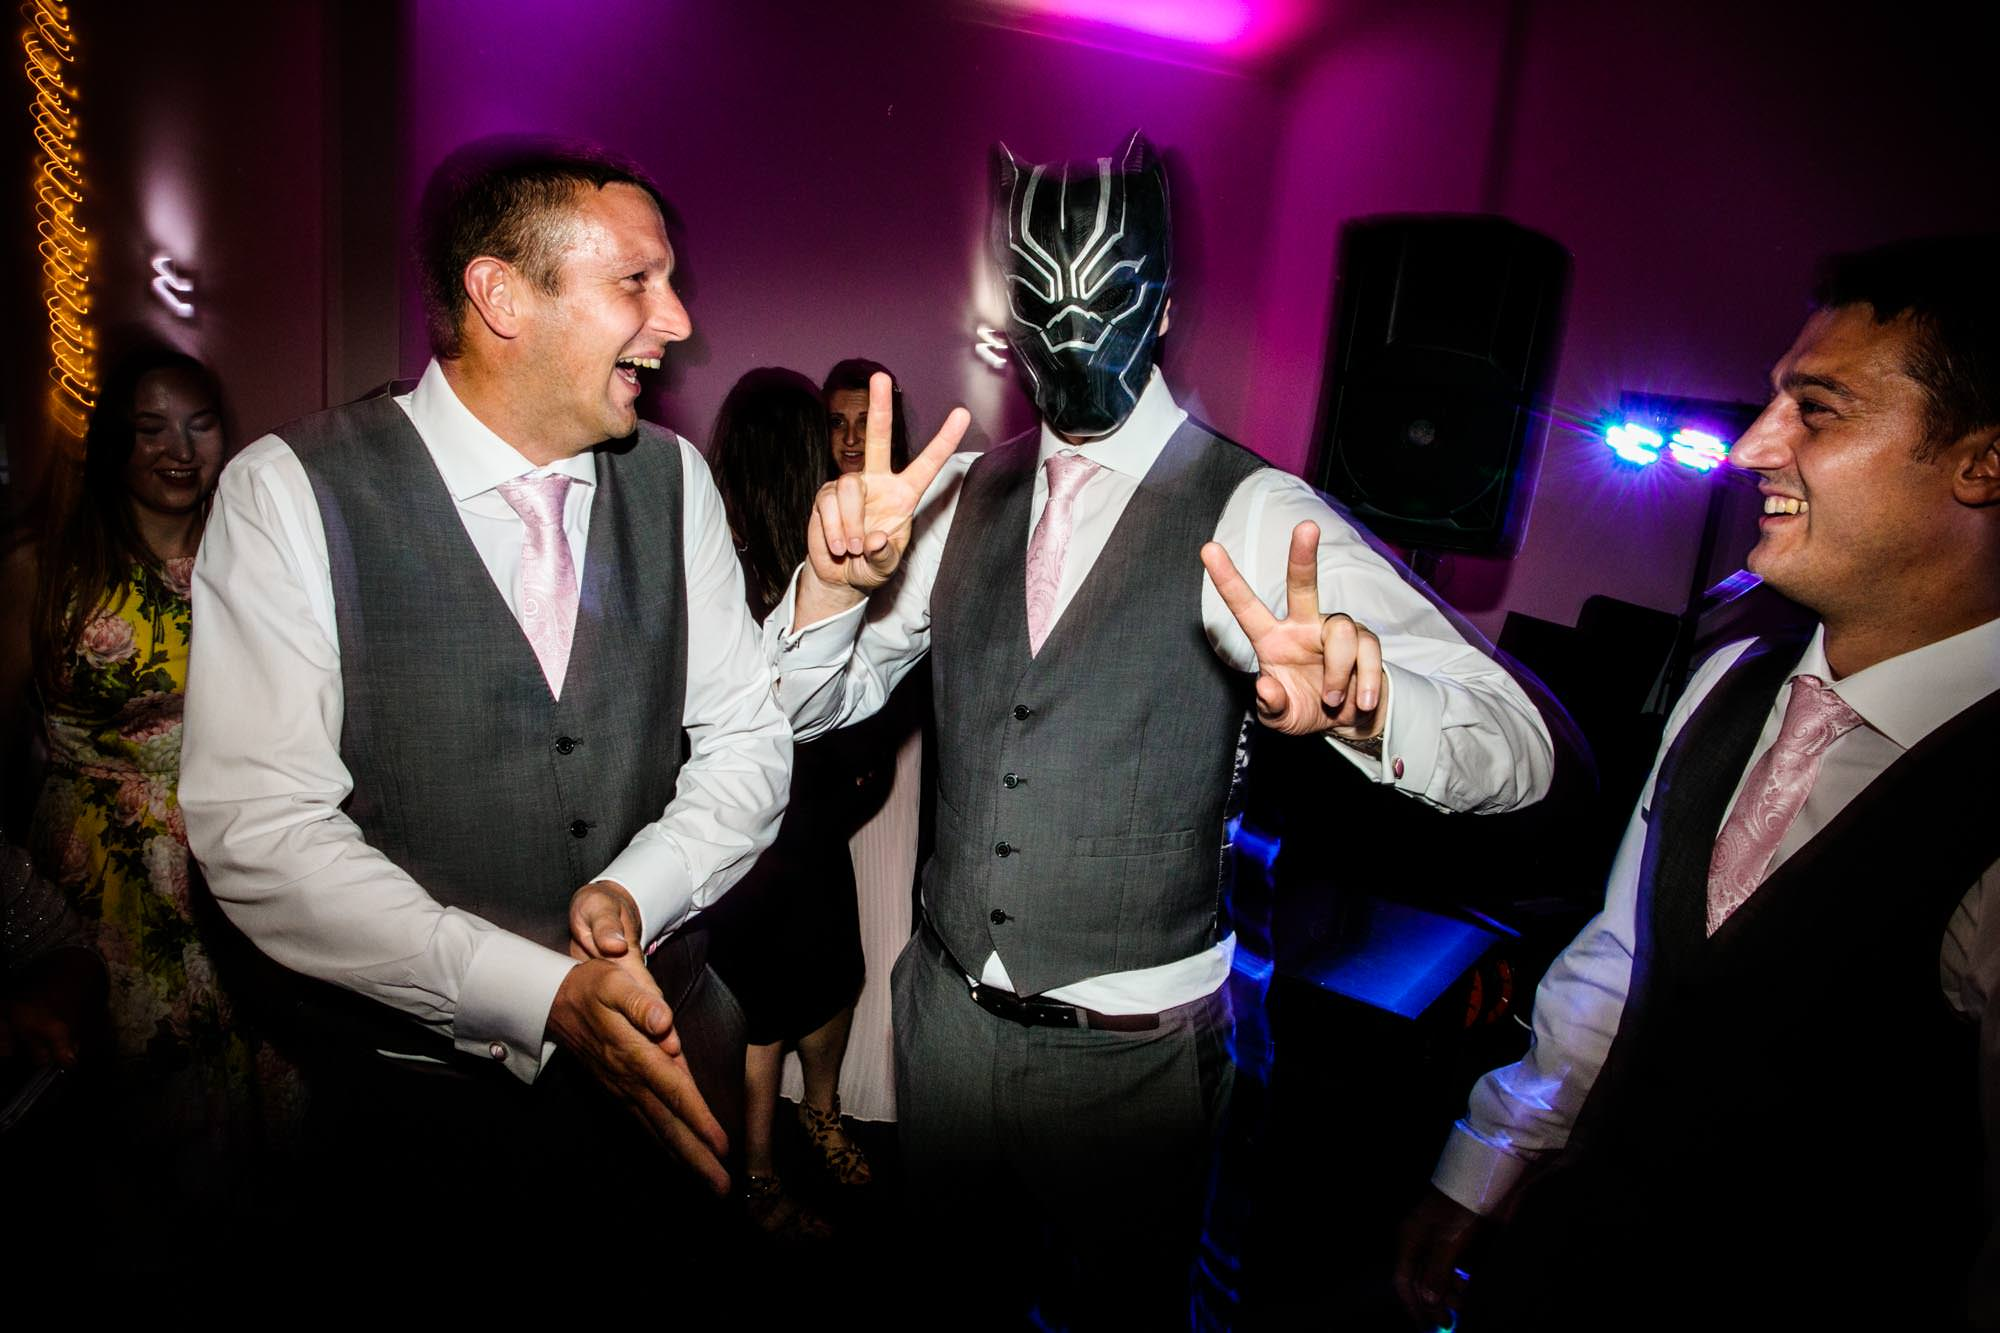 Fun Wedding Photos Manley Mere